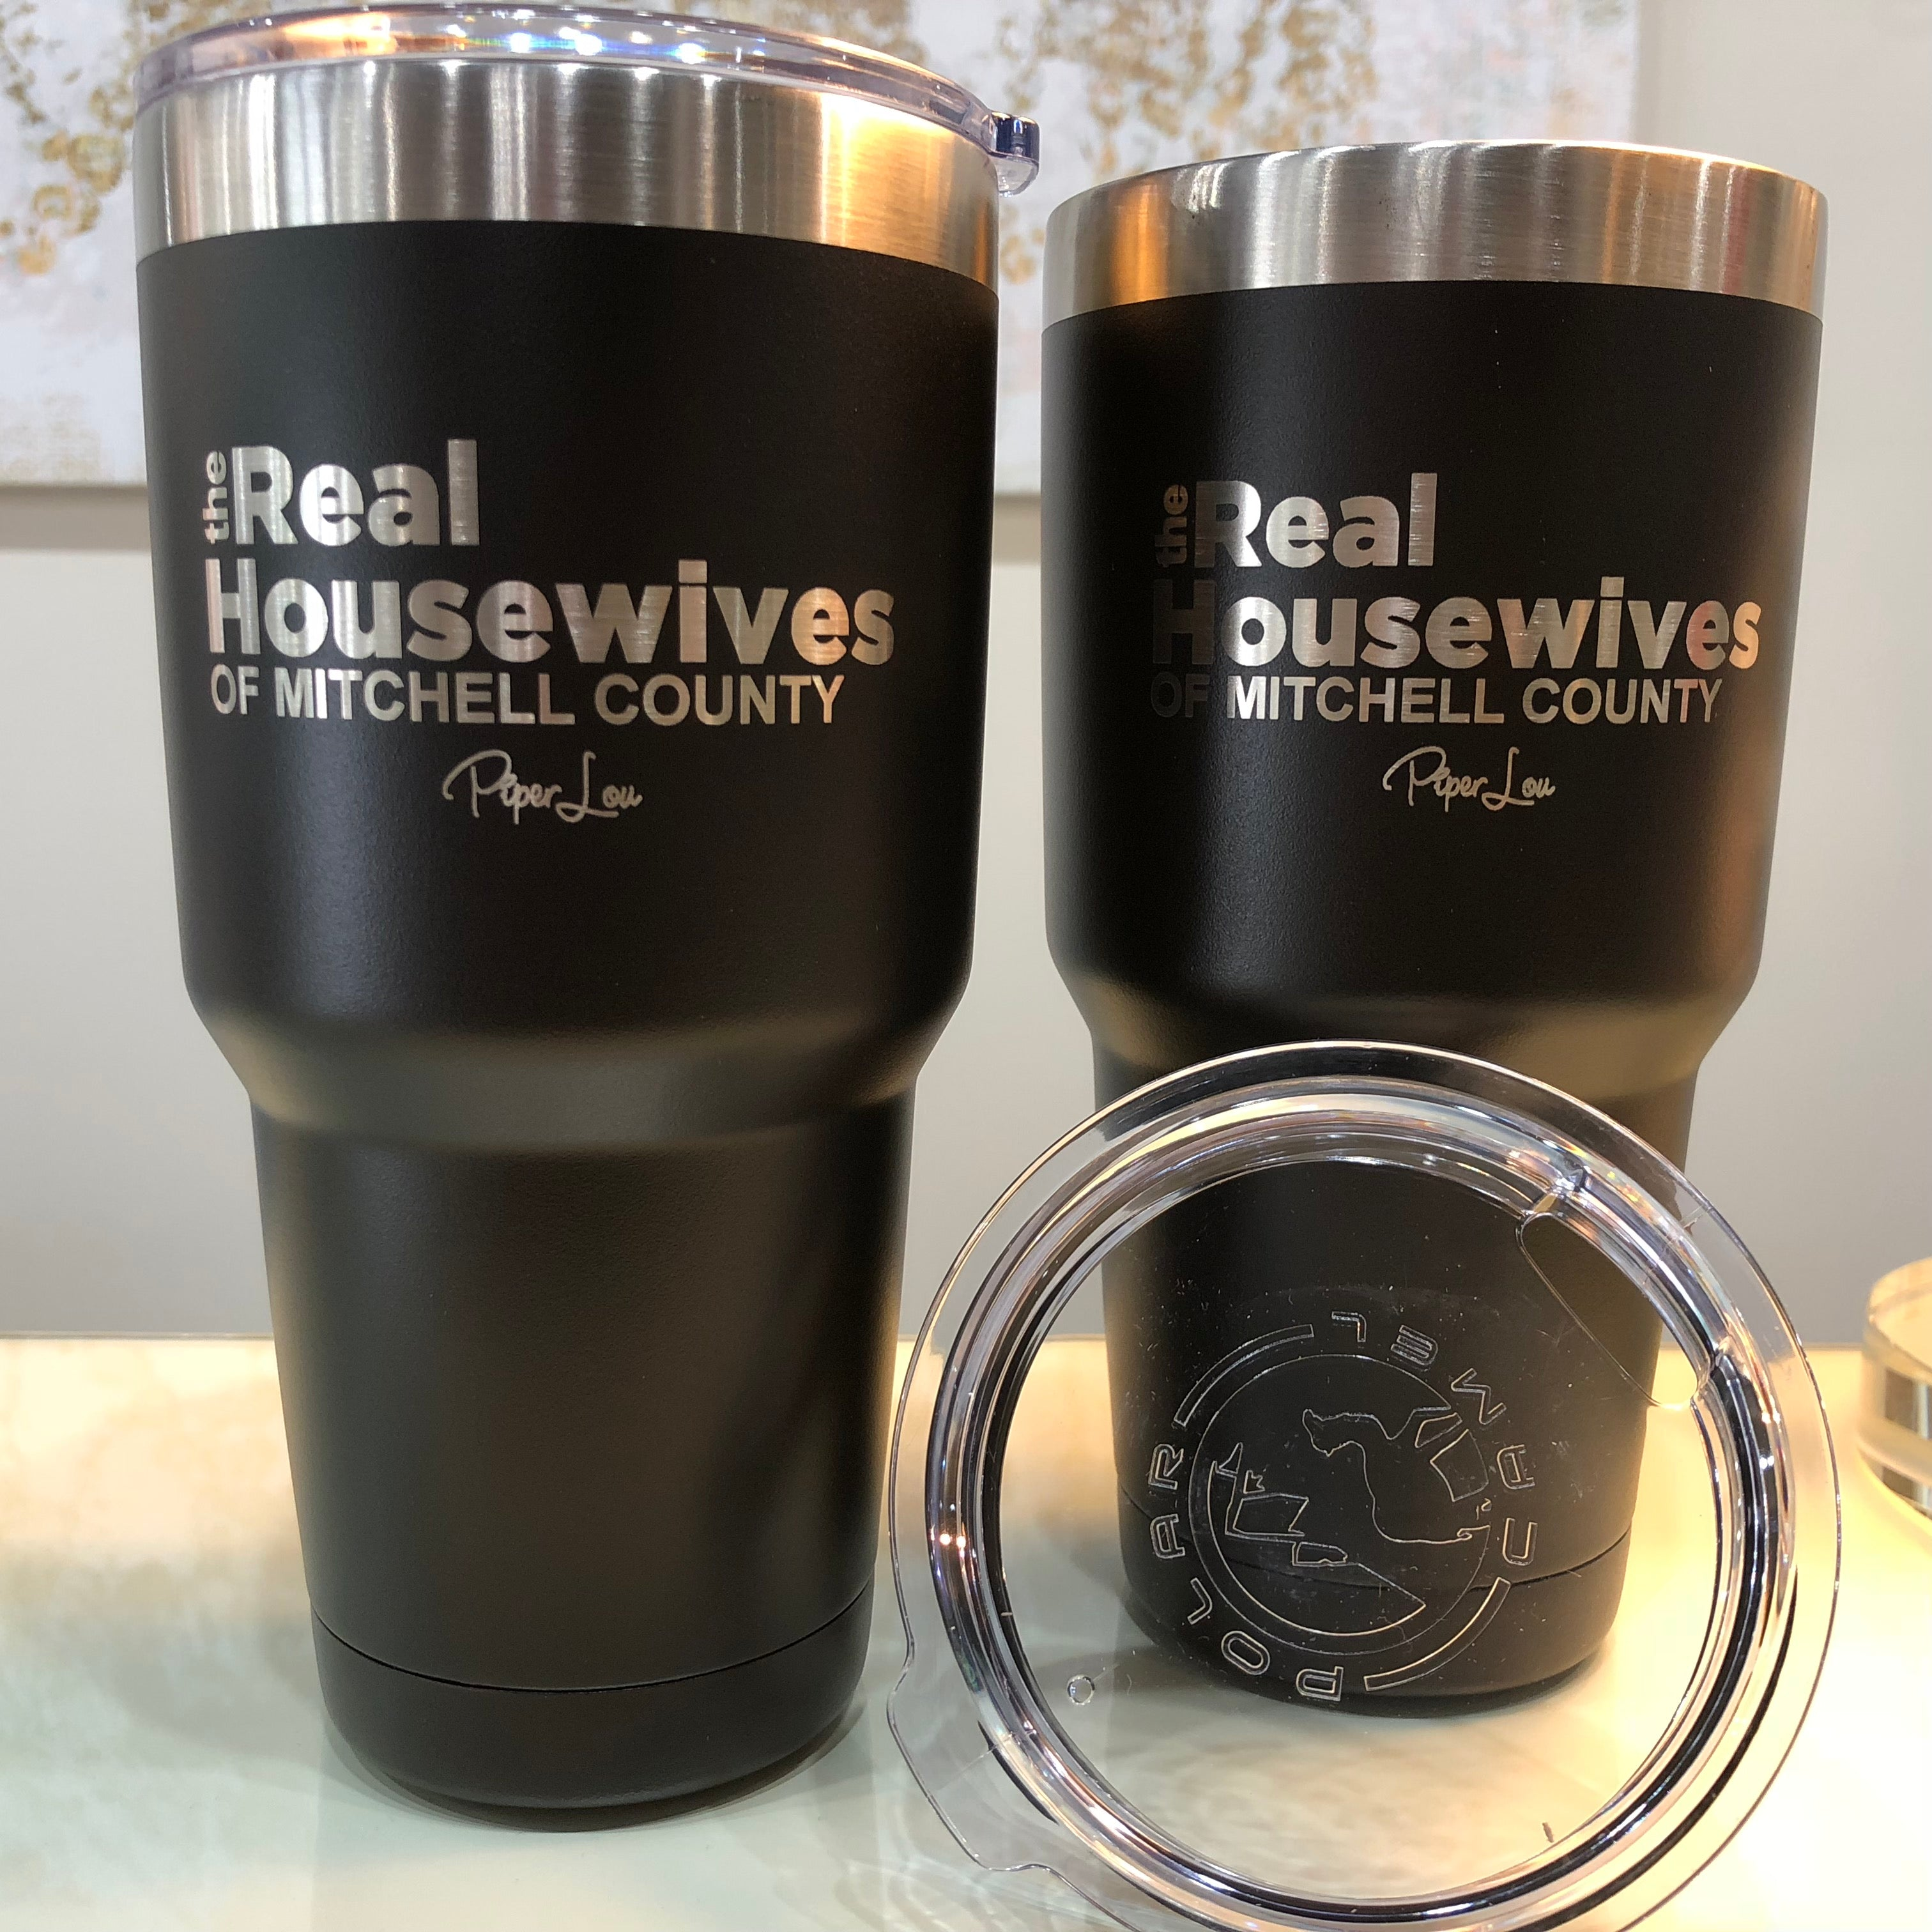 9ecf8edcfdd88 The Real Housewives of Mitchell County 30oz. Tumbler in Black ...